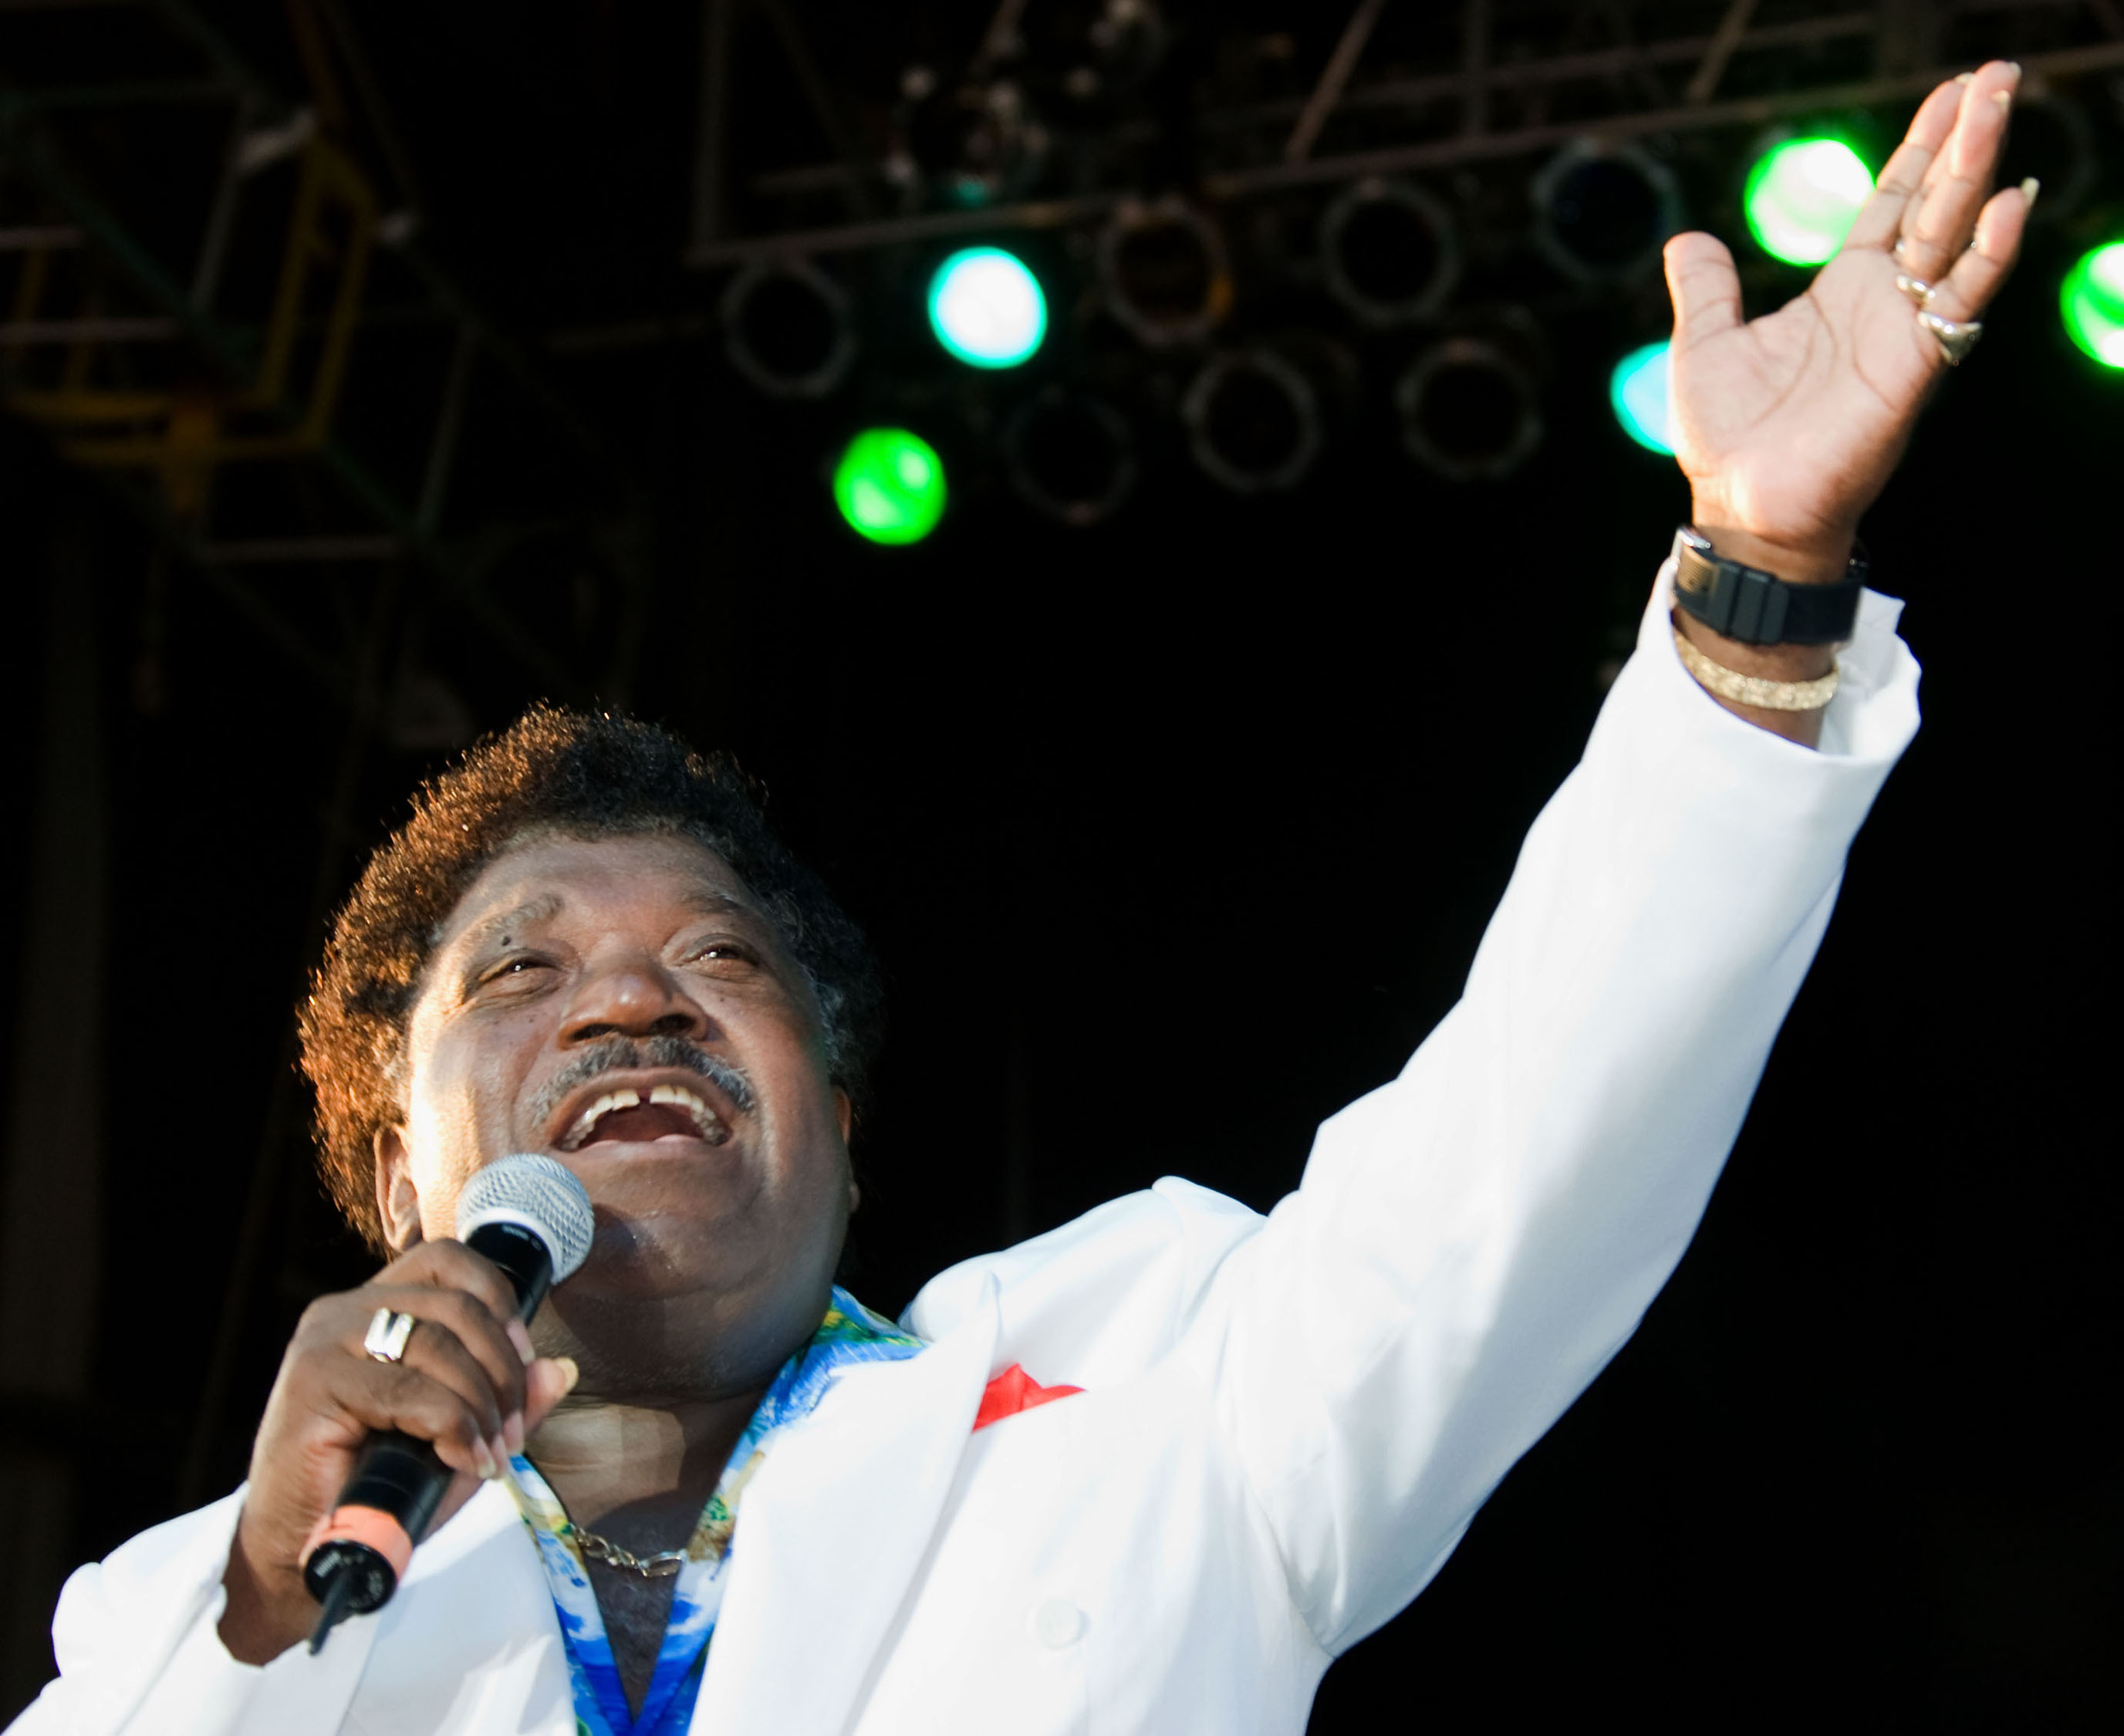 Percy Sledge performs at ''Rock 'N' Roll Reunion XXVIII'' on the Grandstand stage at the Iowa State Fair on Aug. 11, 2007.